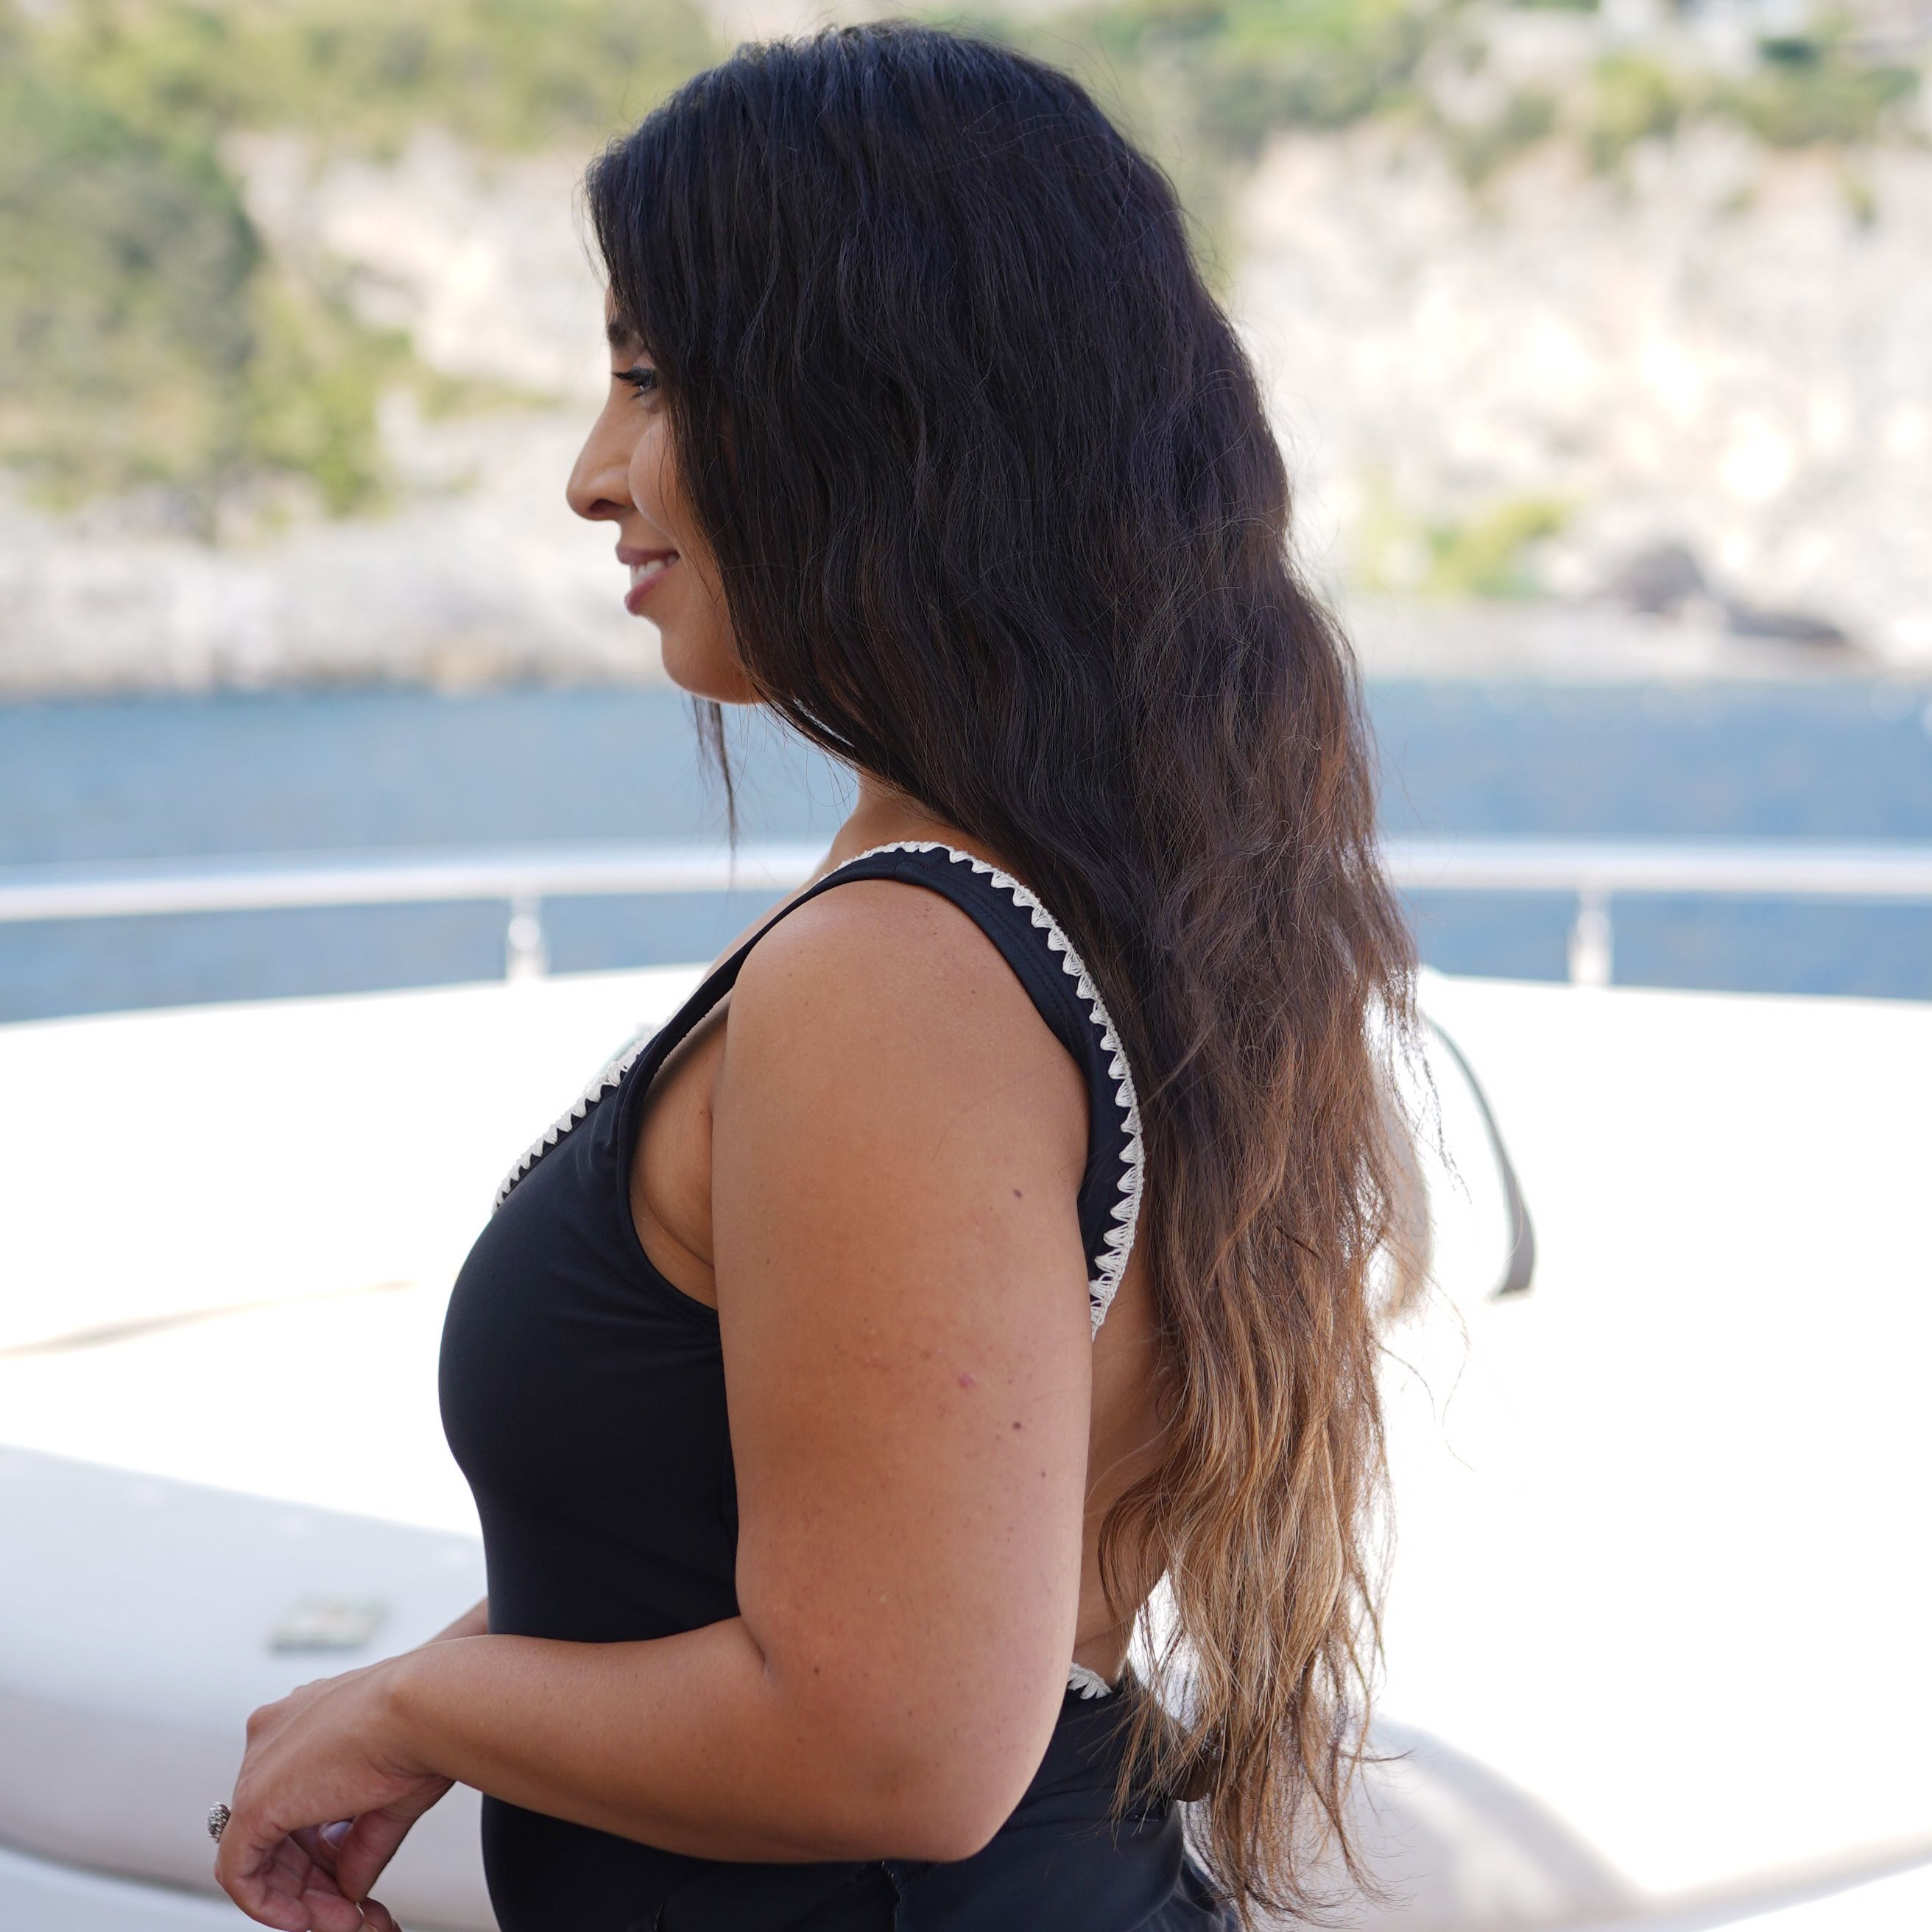 'How I Got Sun-Kissed Highlights Without Damaging My Virgin Hair'